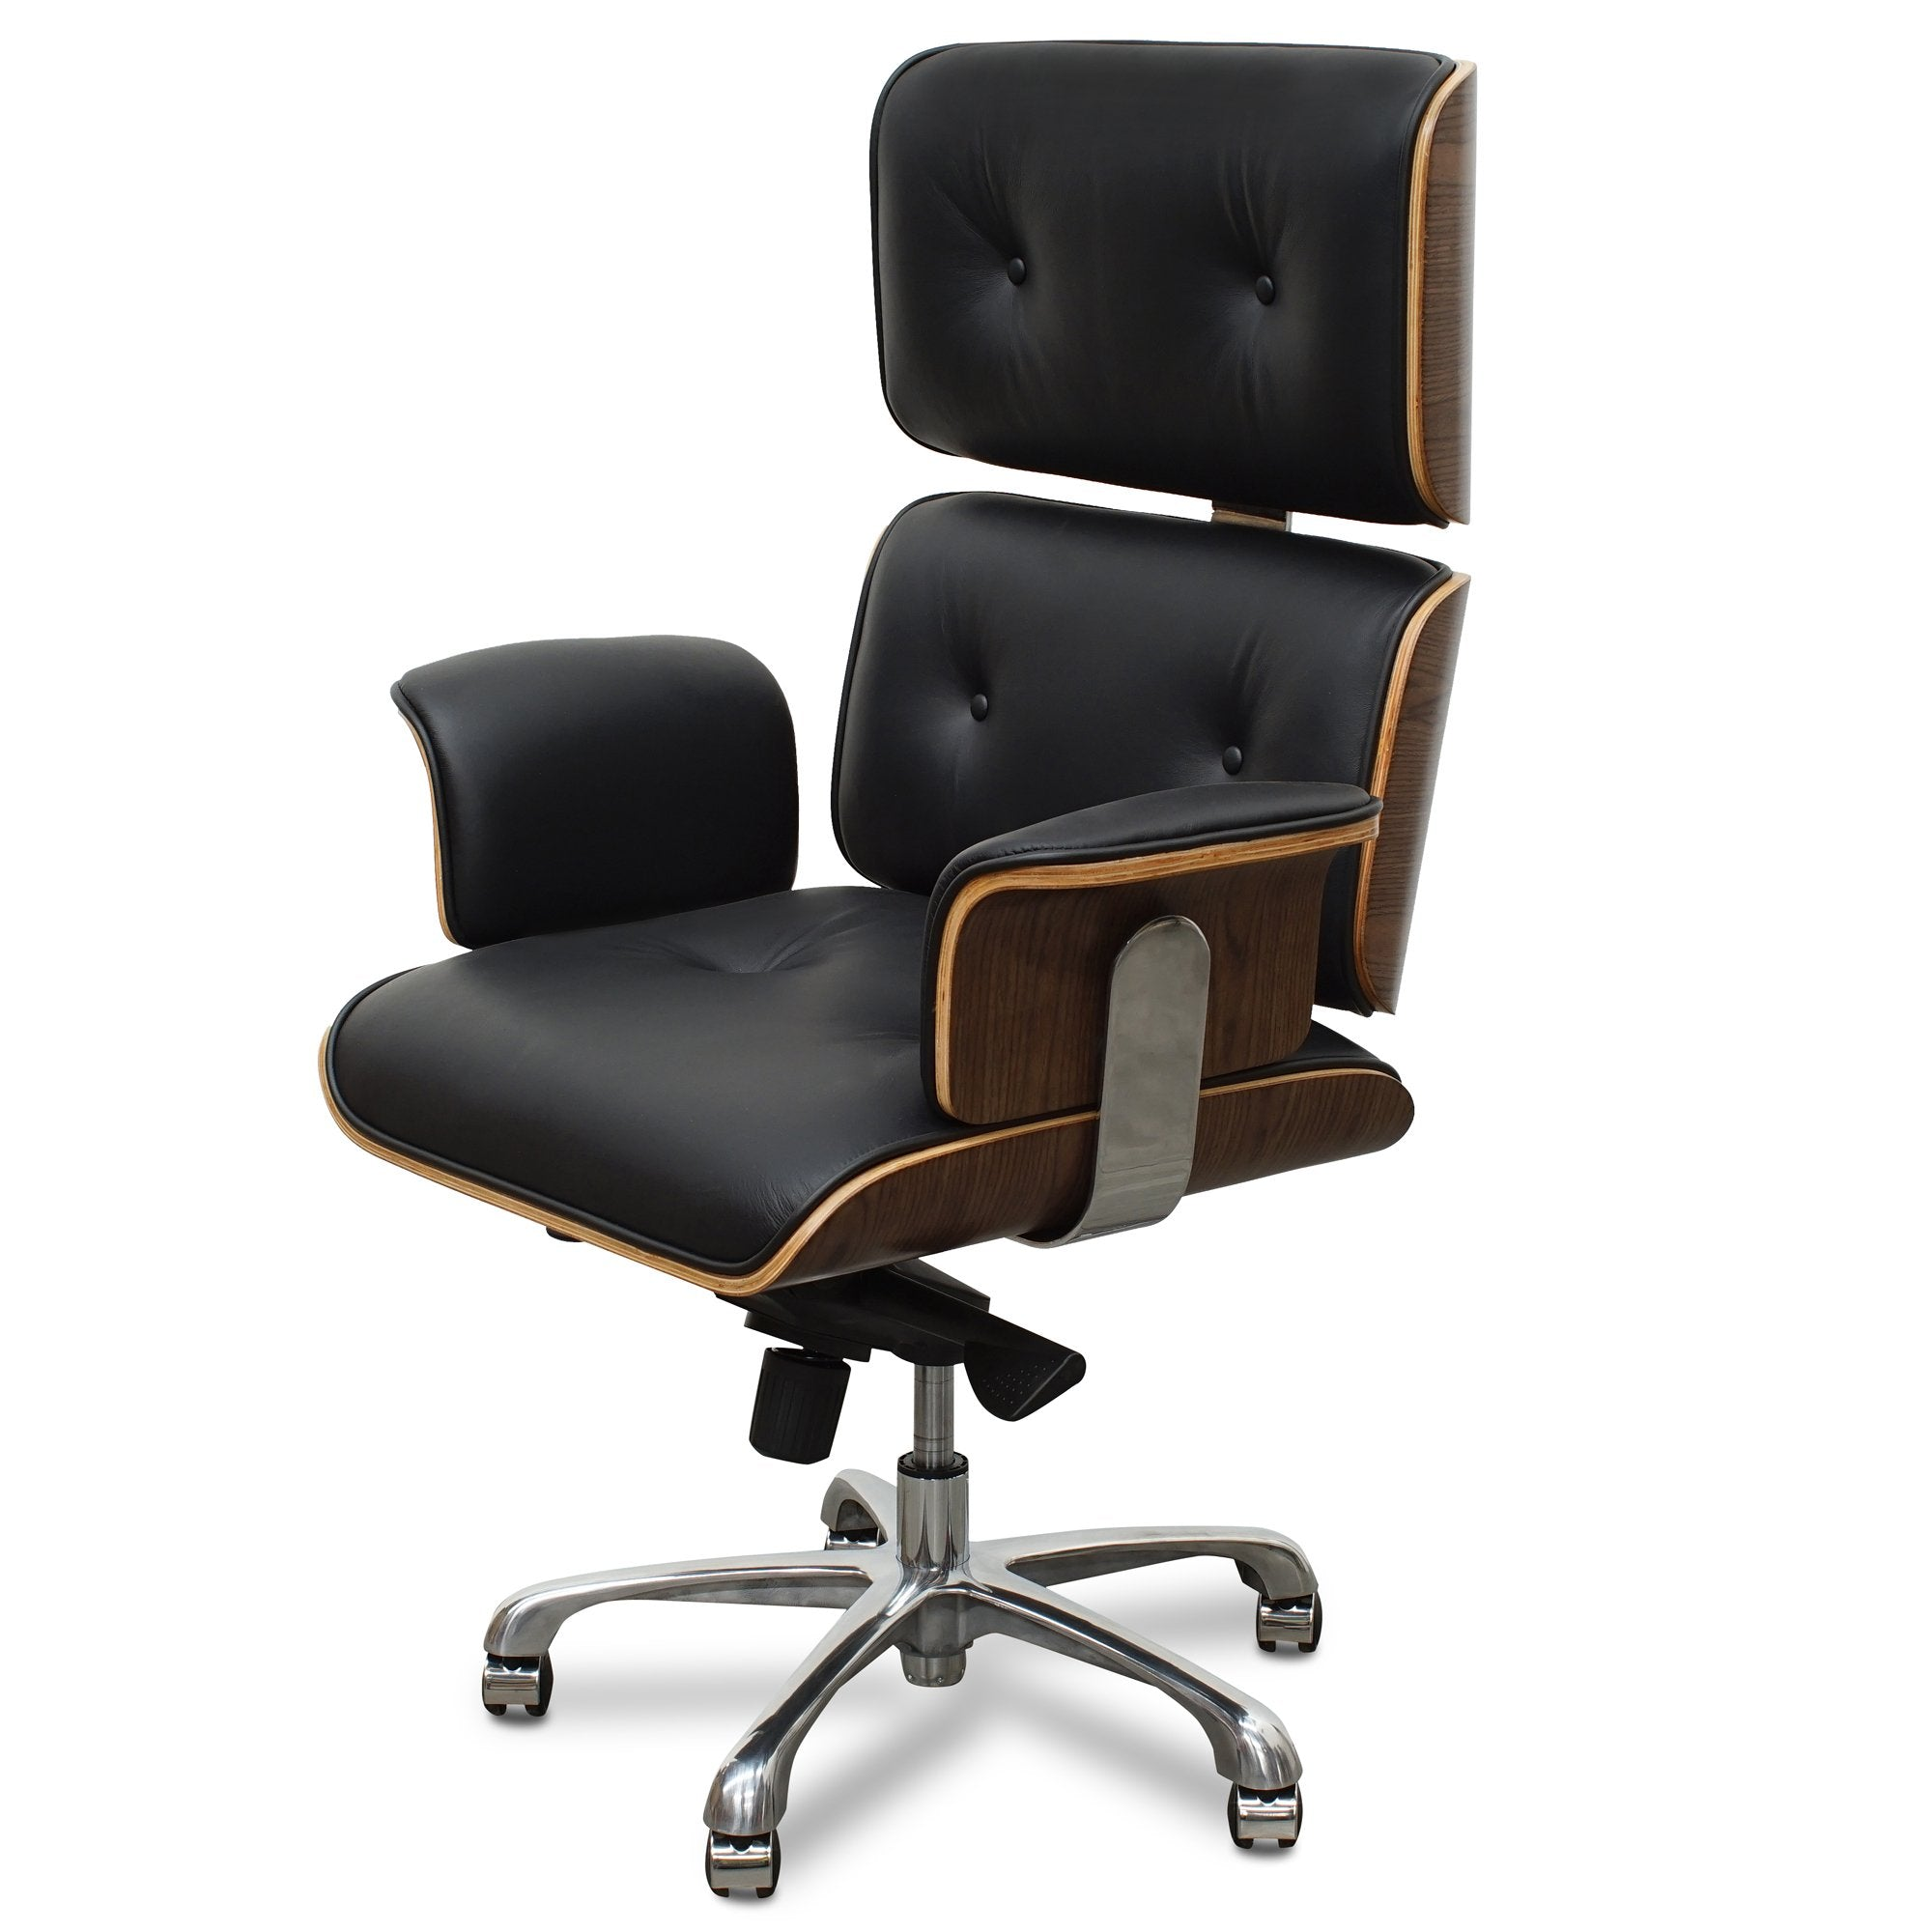 Image of: Eames Chair Replica Executive Office Chair Interior Secrets